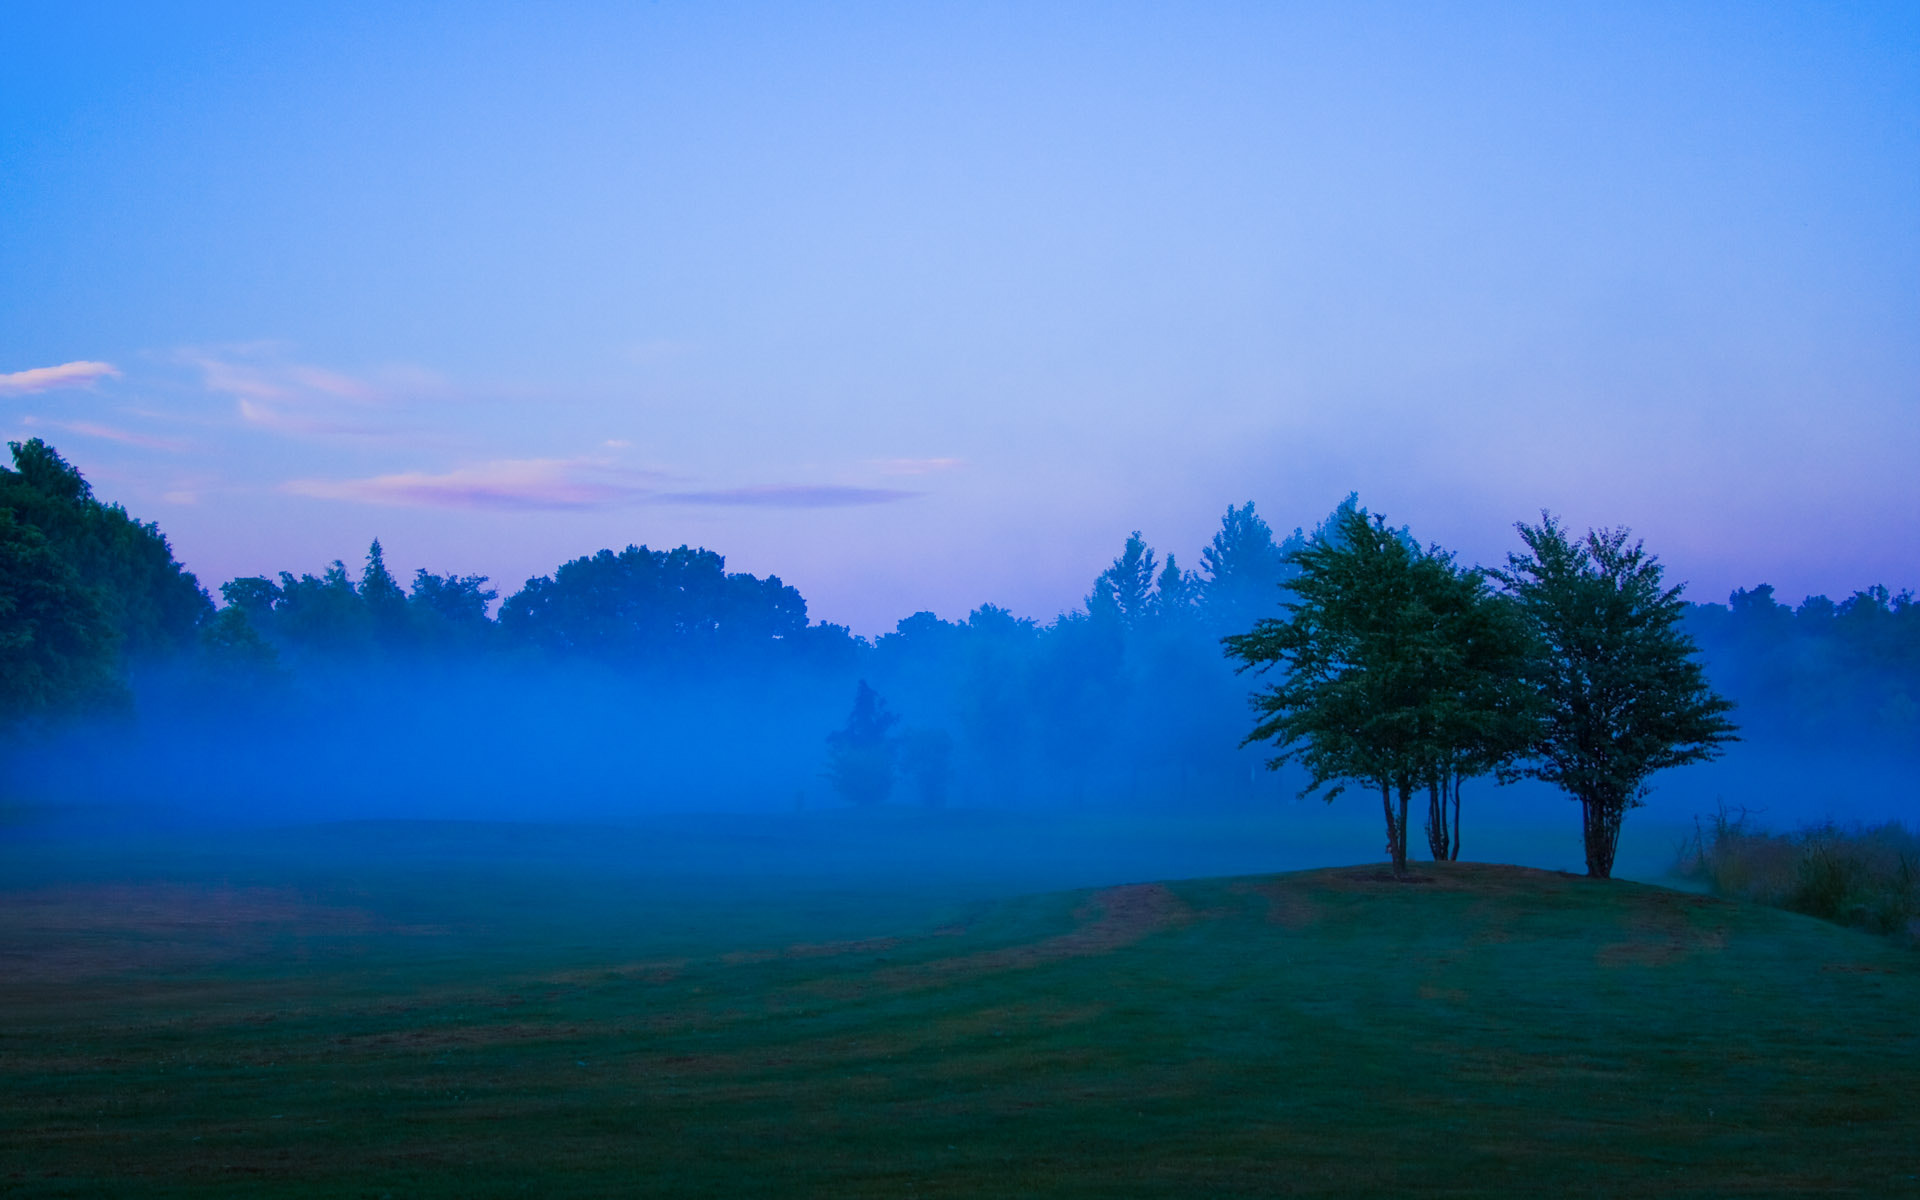 Photograph Early Golf by Peter Giger on 500px